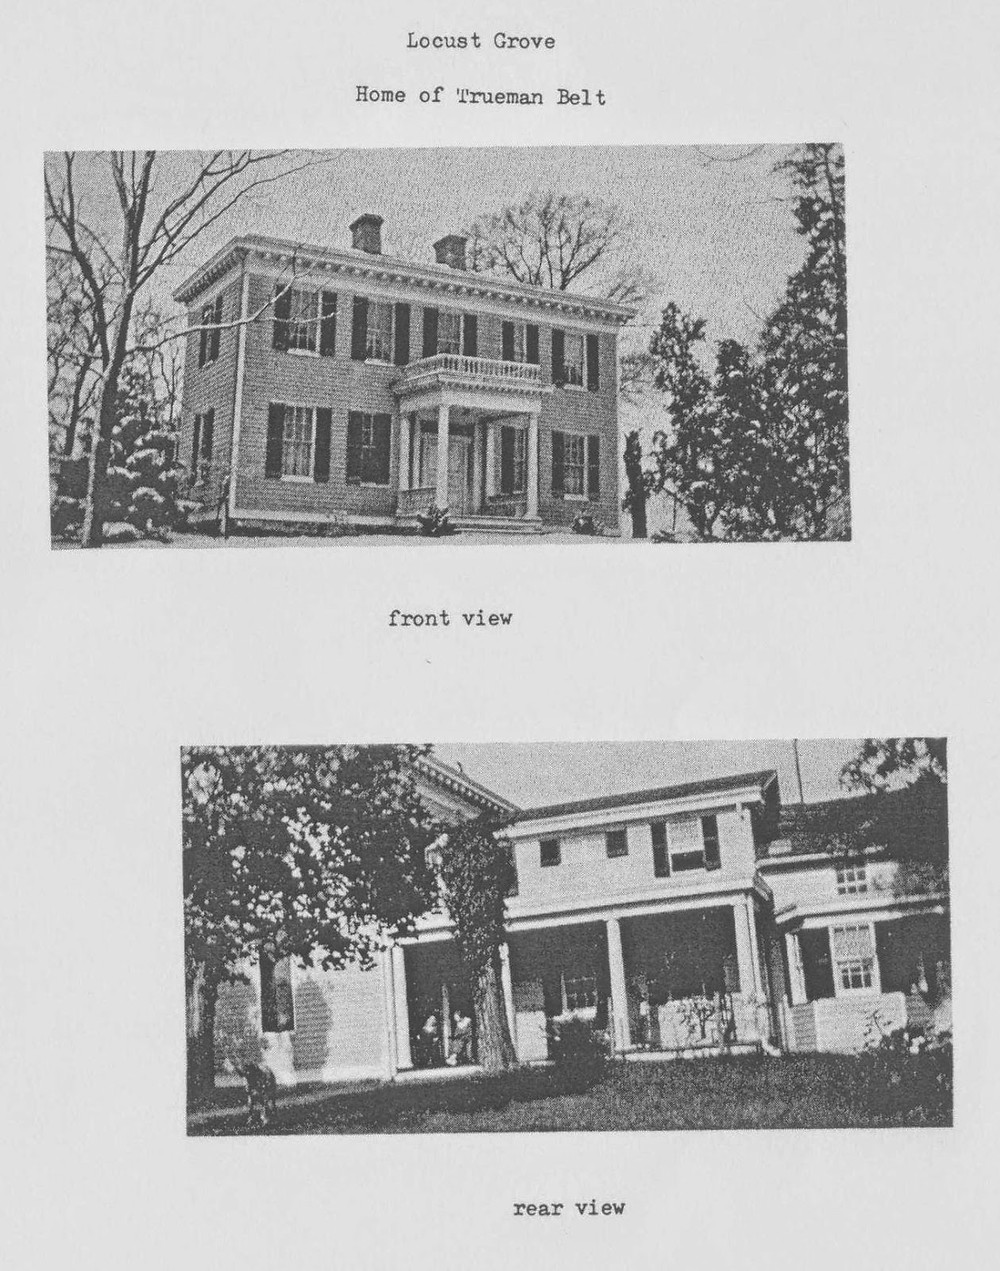 Emack House - Locust Grove image courtesy - DeMarr Library Historian Prince George's County Historical Society